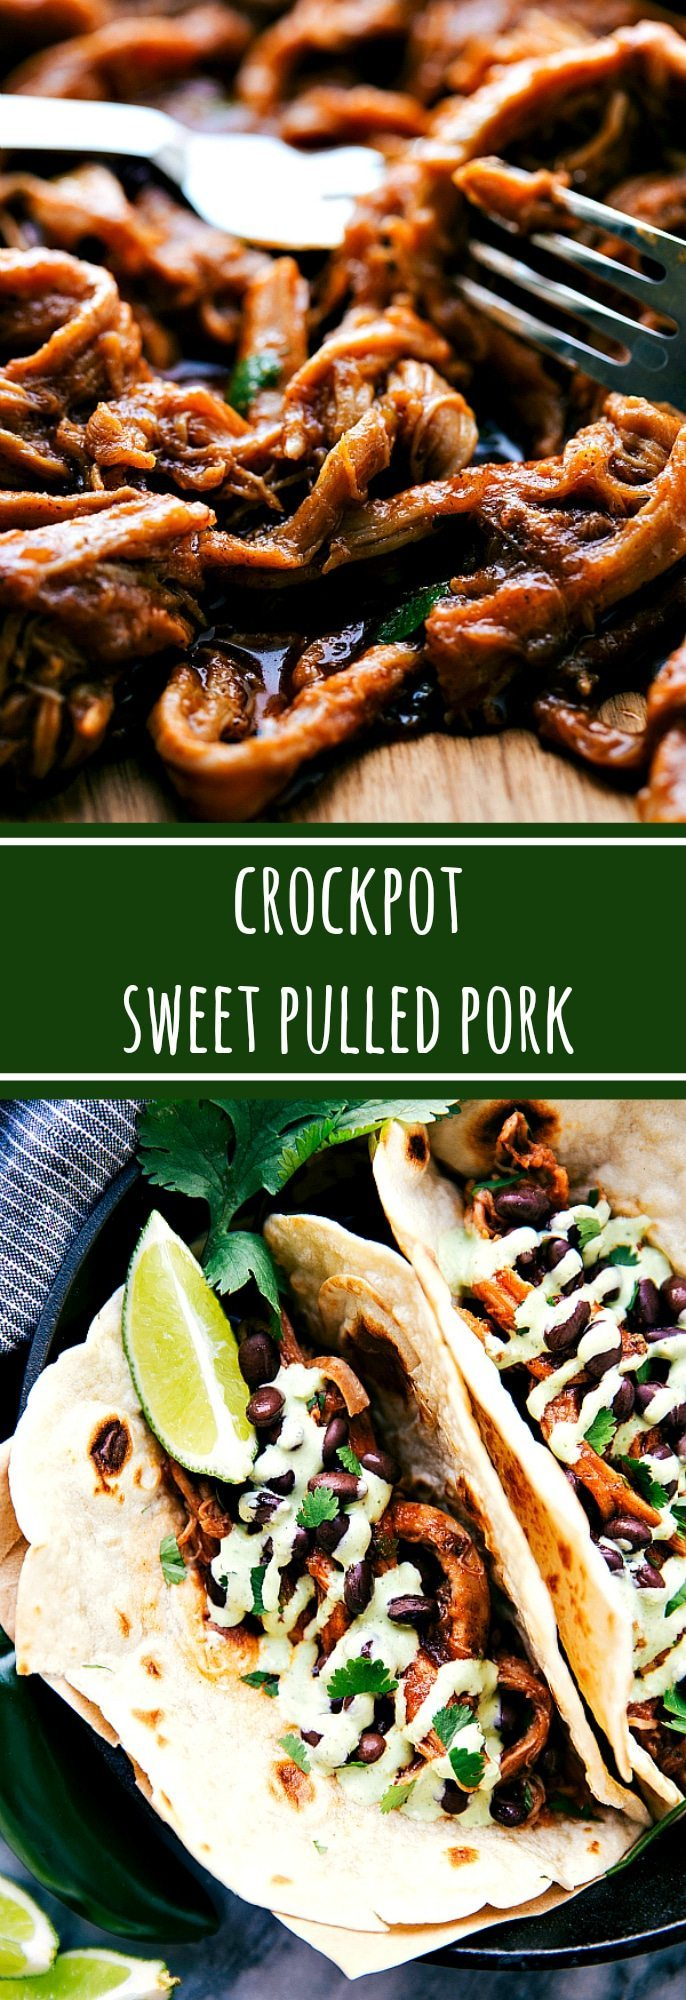 The BEST Crockpot Sweet Pulled Pork with an easy blender tomatillo cream sauce